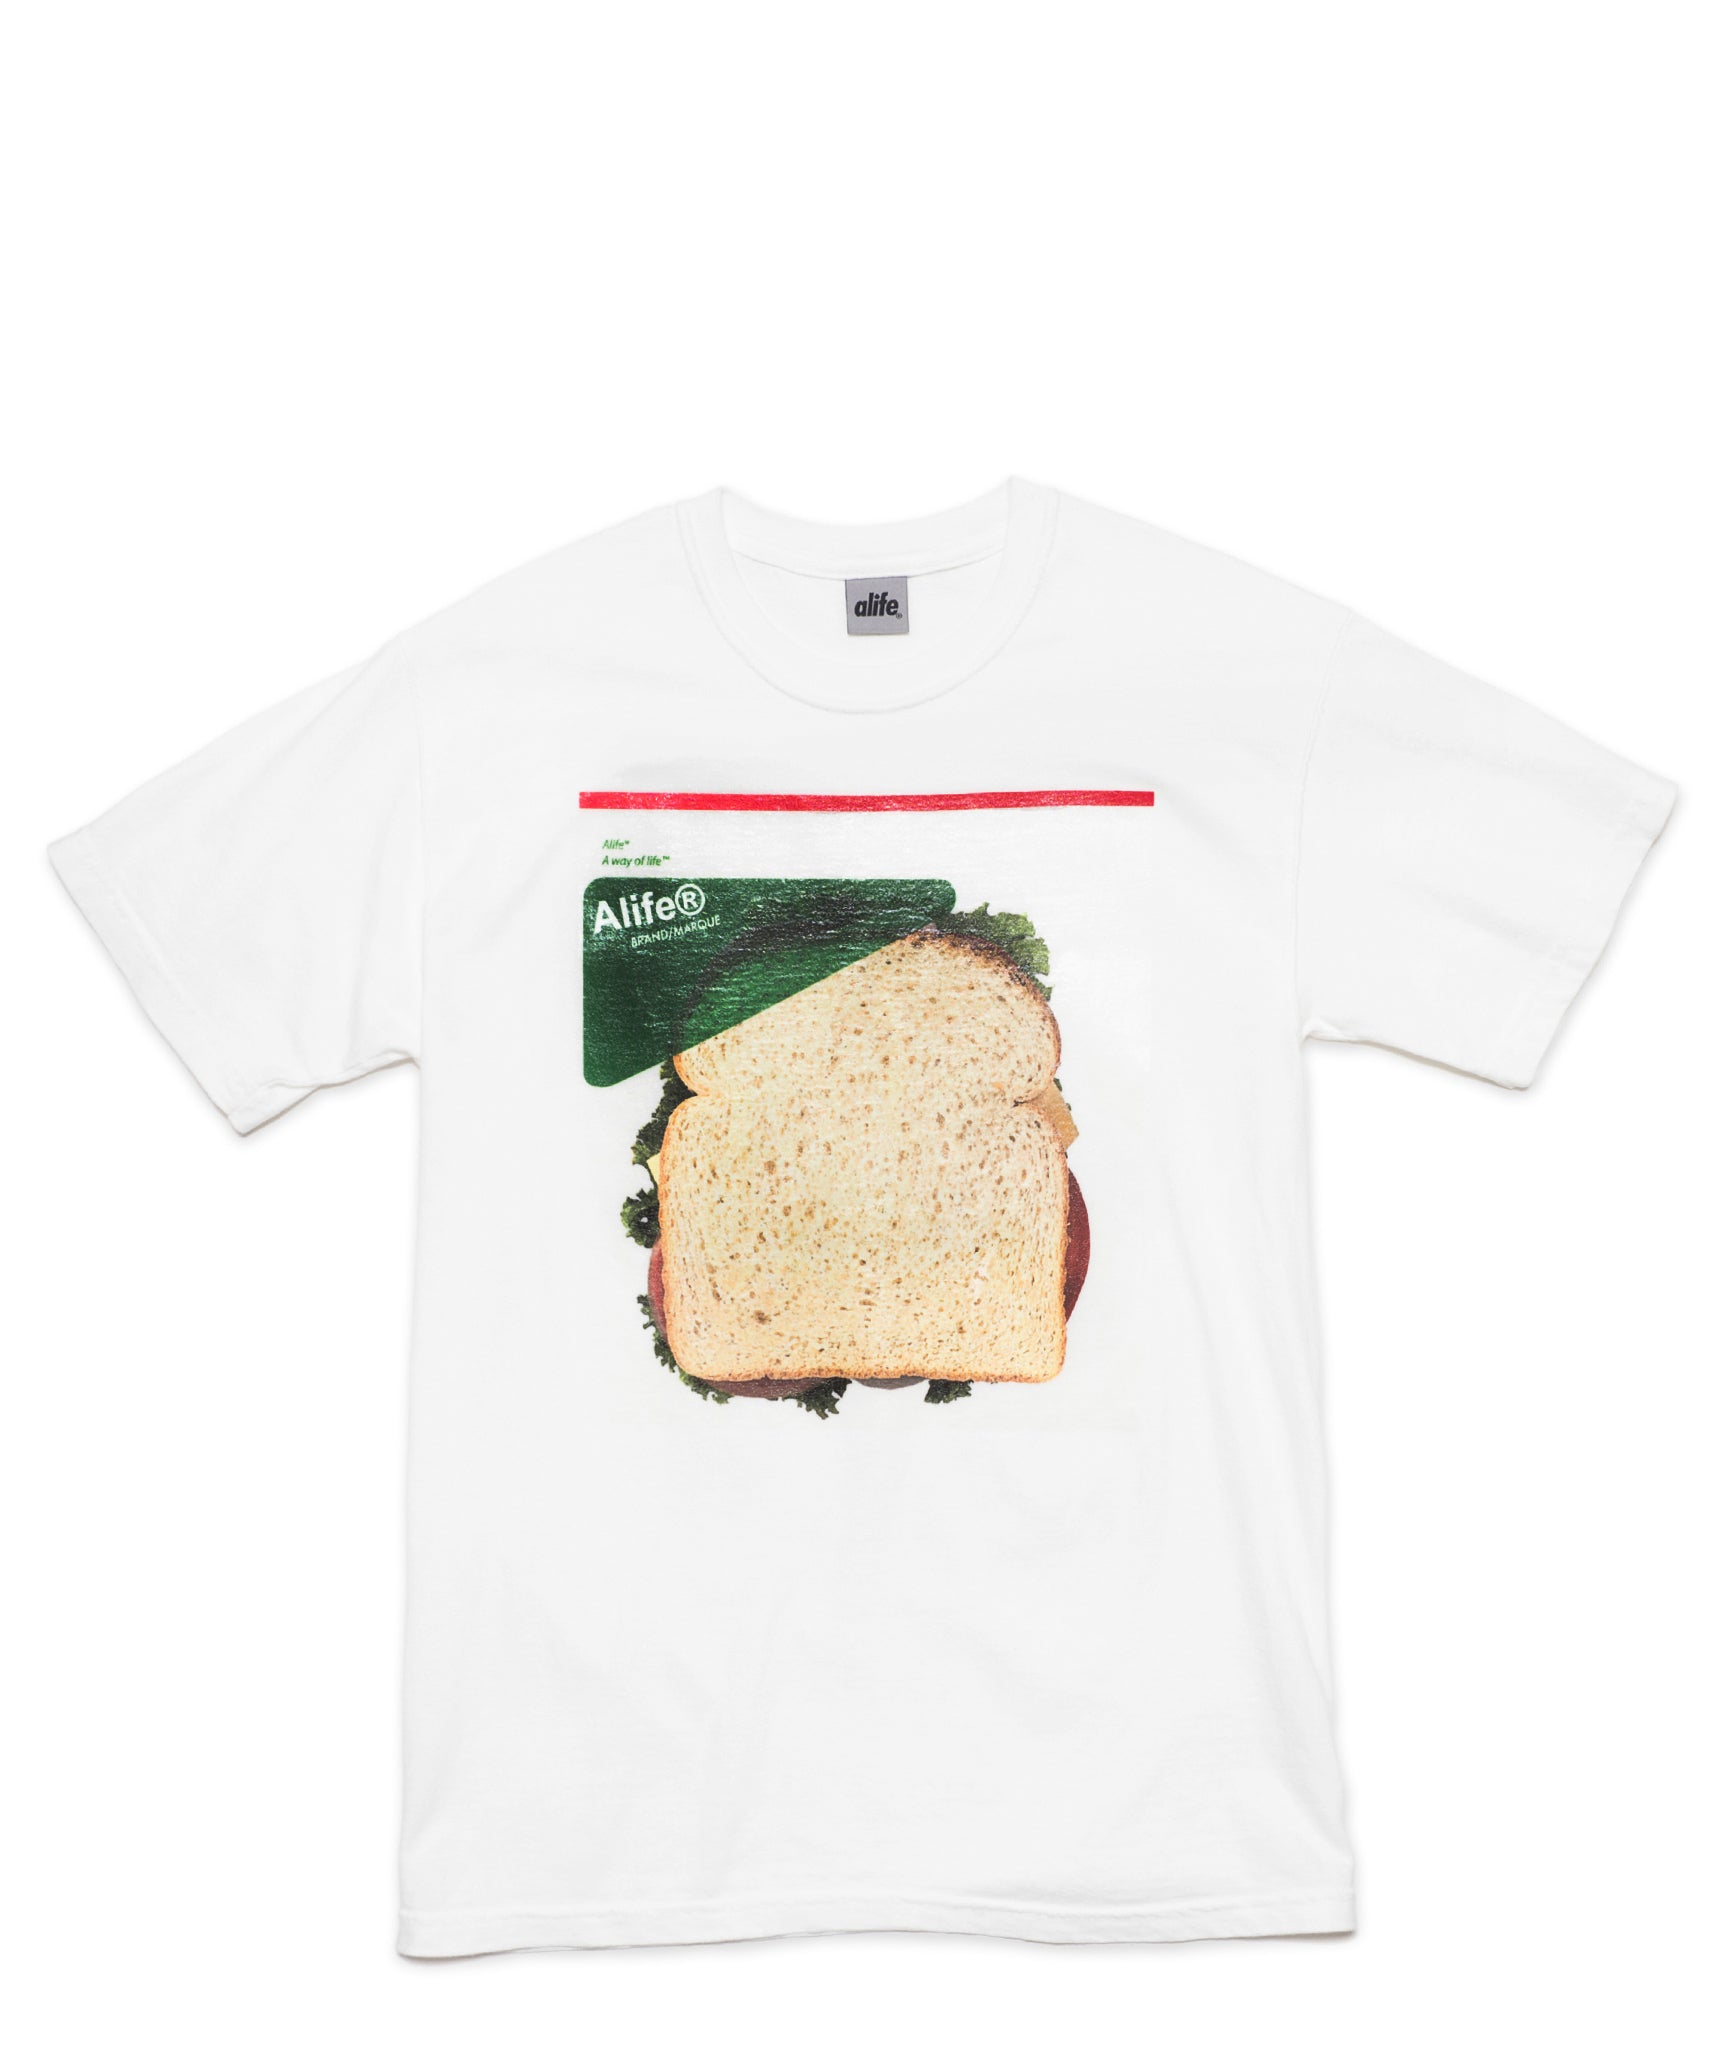 Alife Stay Fresh™ Sandwich Tee